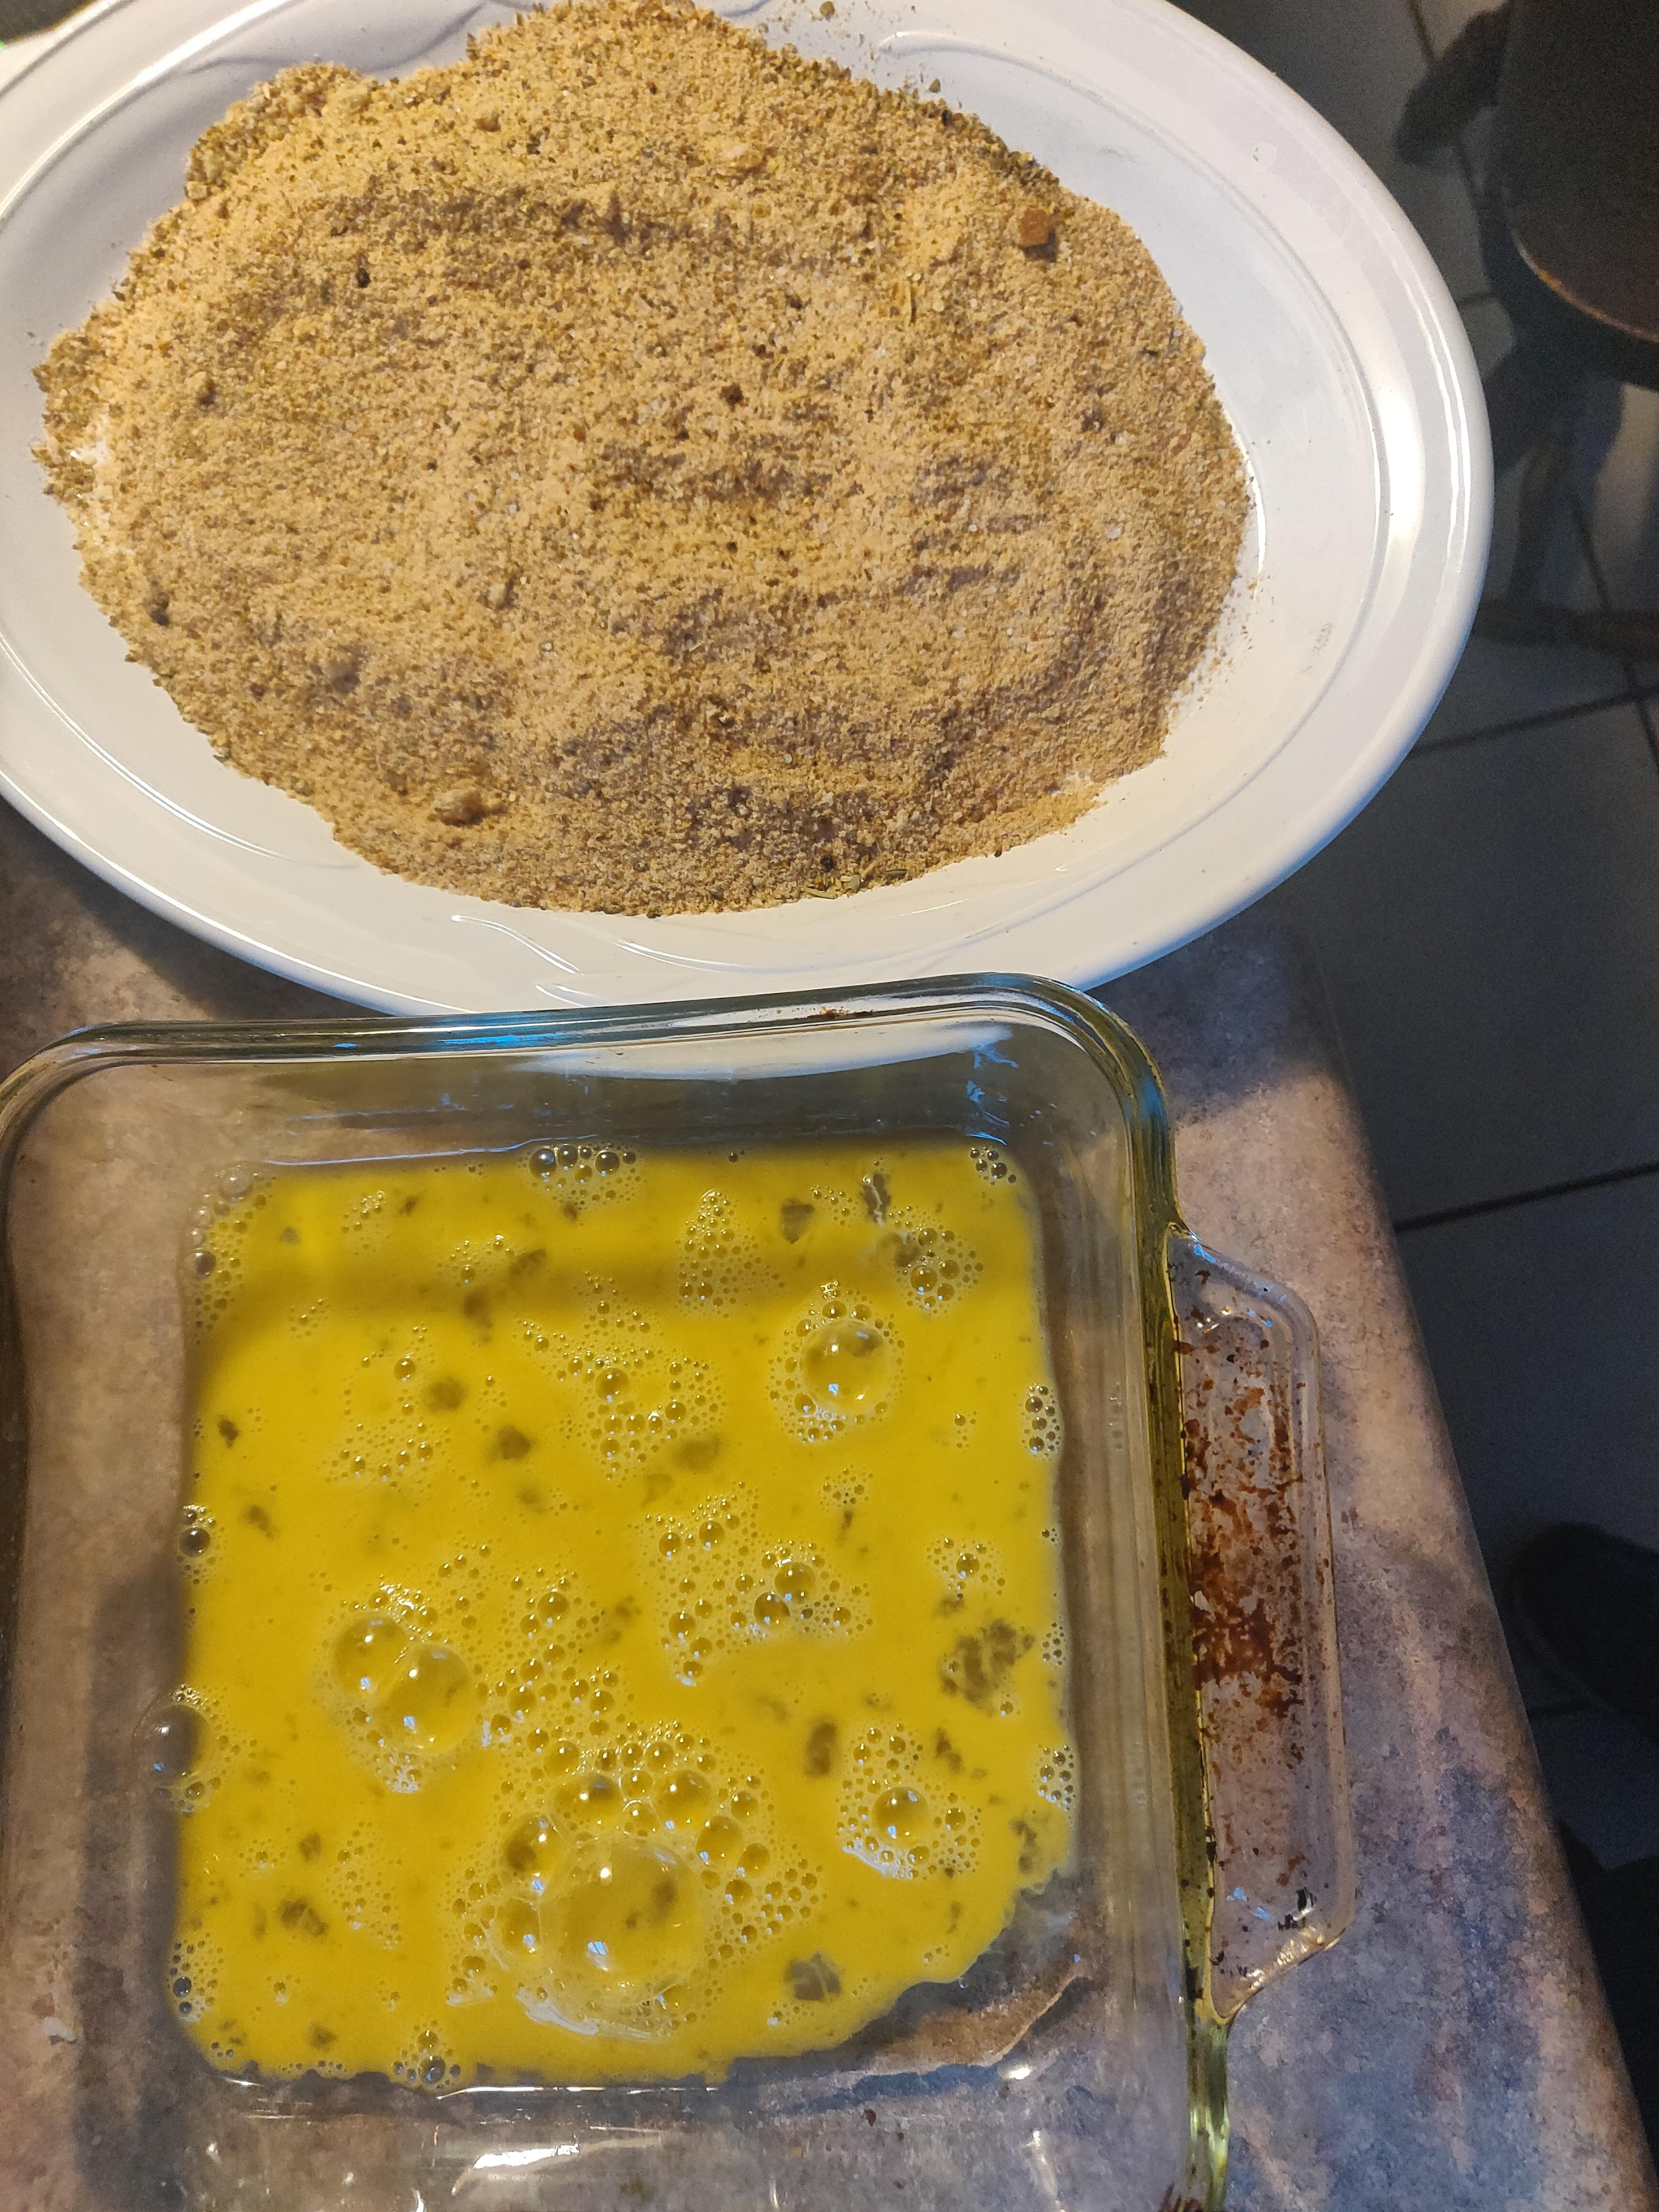 Breadcrumbs in a platter and scrambled whole eggs, ready to become the assembly line for the cutlets.